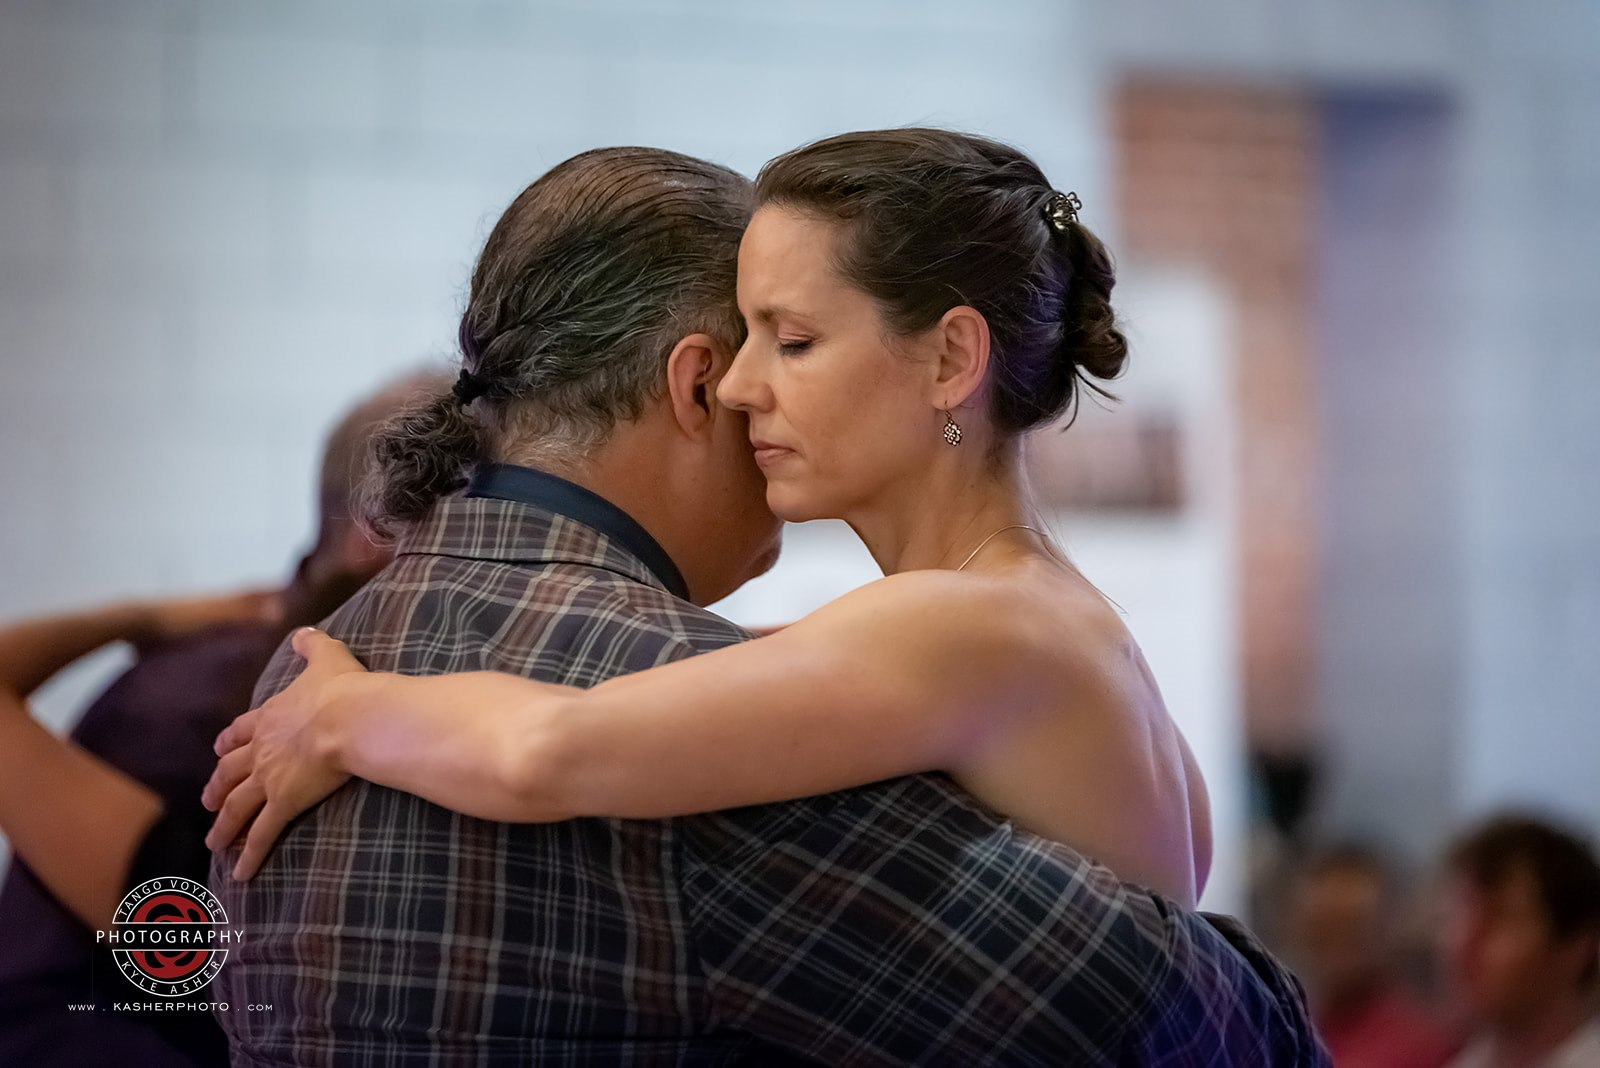 Emily Web Dancing at San Diego Tango Festival - Side Embrace Shot